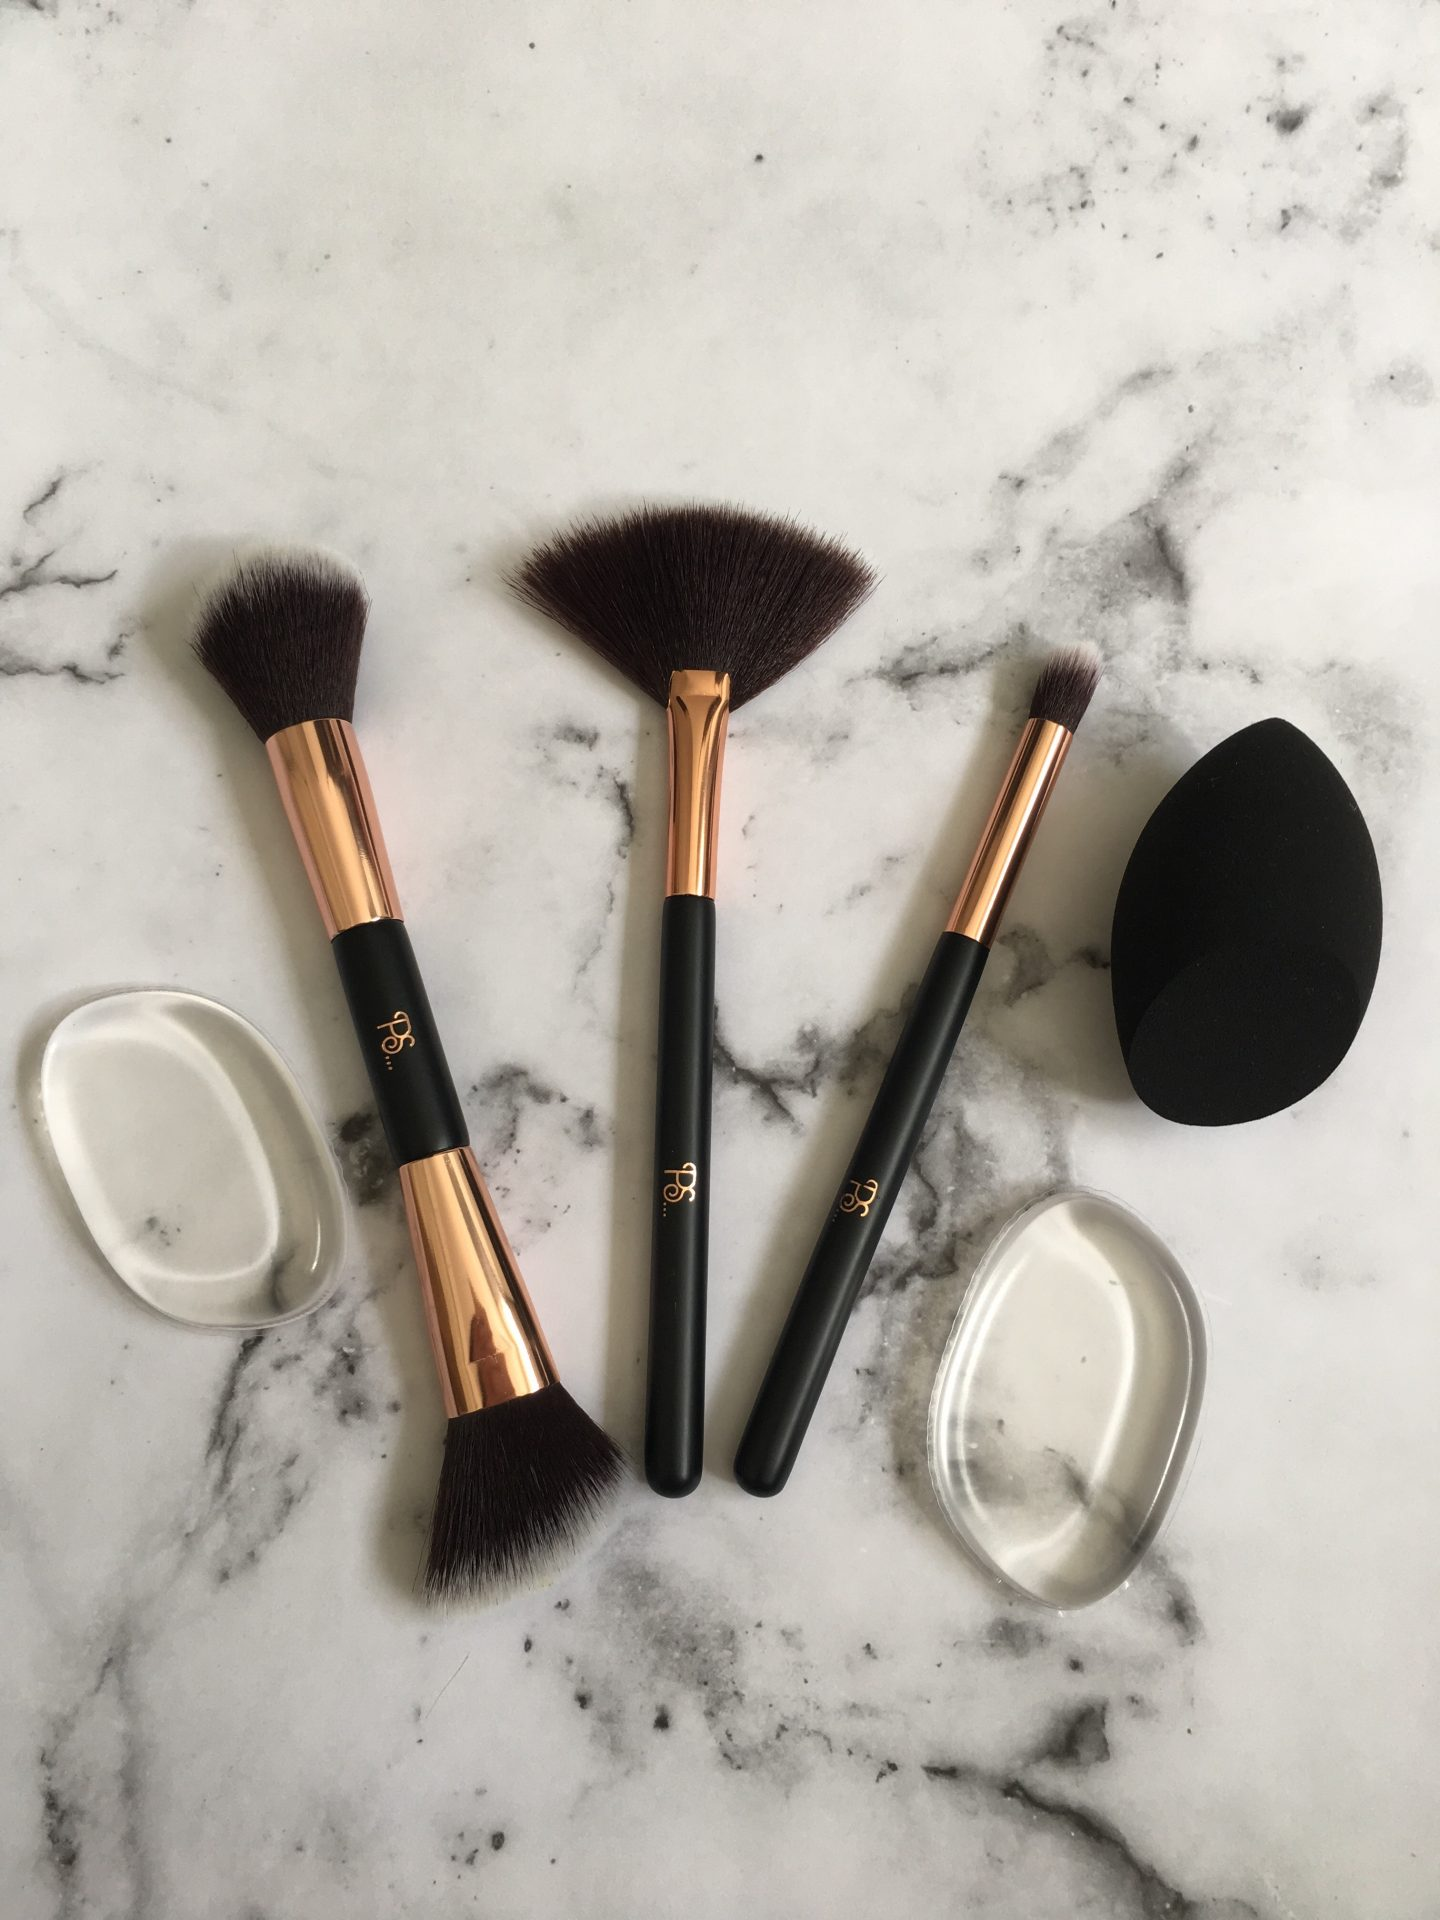 Primark Makeup Tools Review